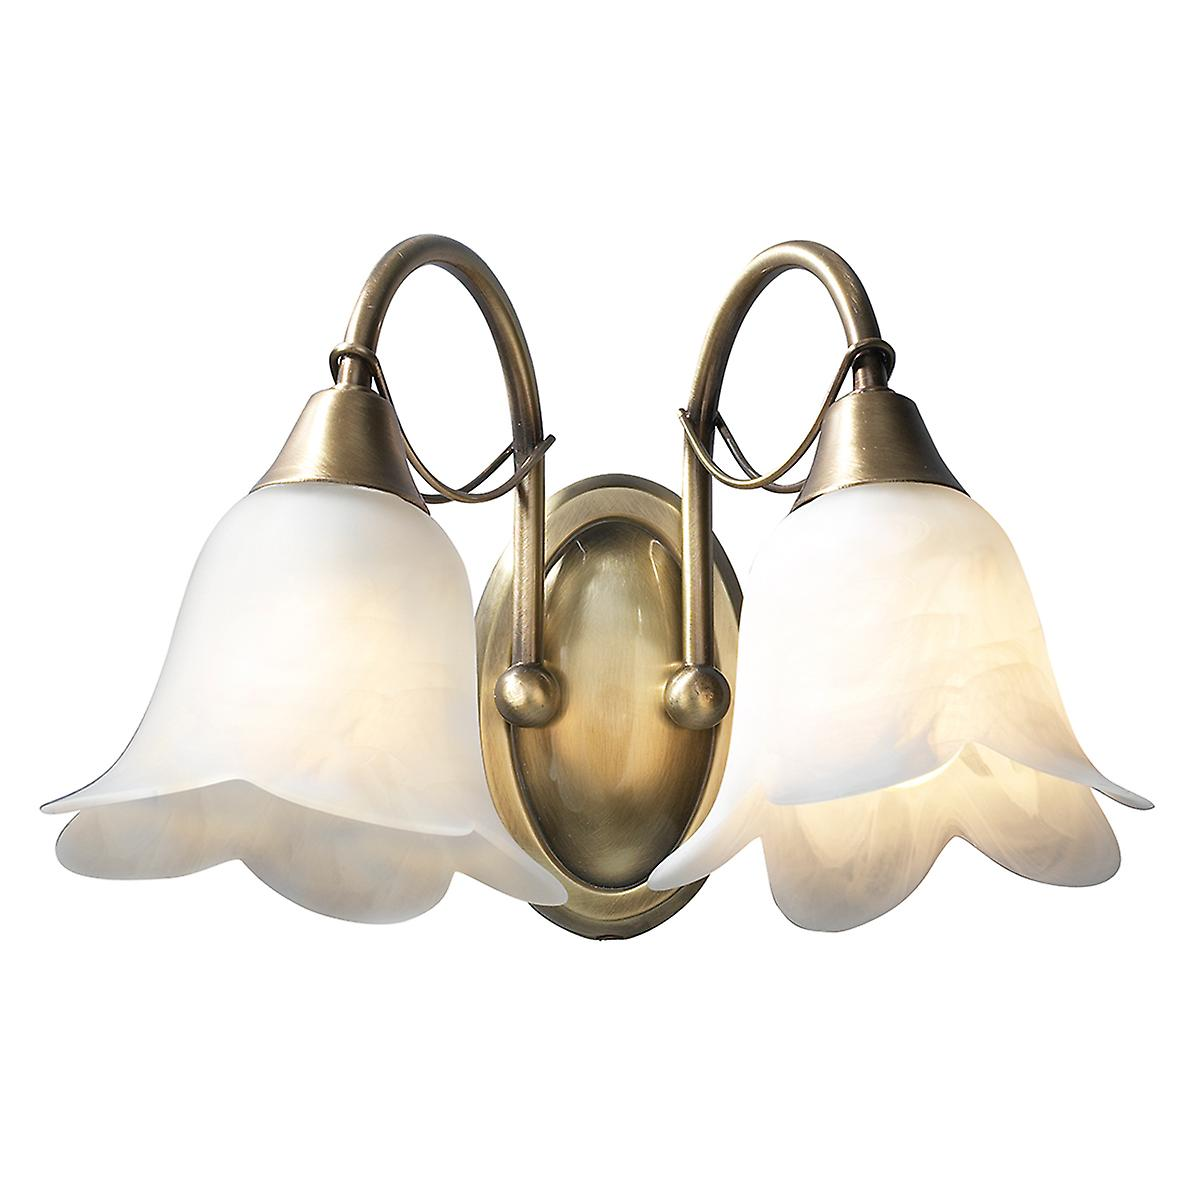 Dar DOU0975 Doublet Traditional Switched Double Wall Light With Alabaster Glass